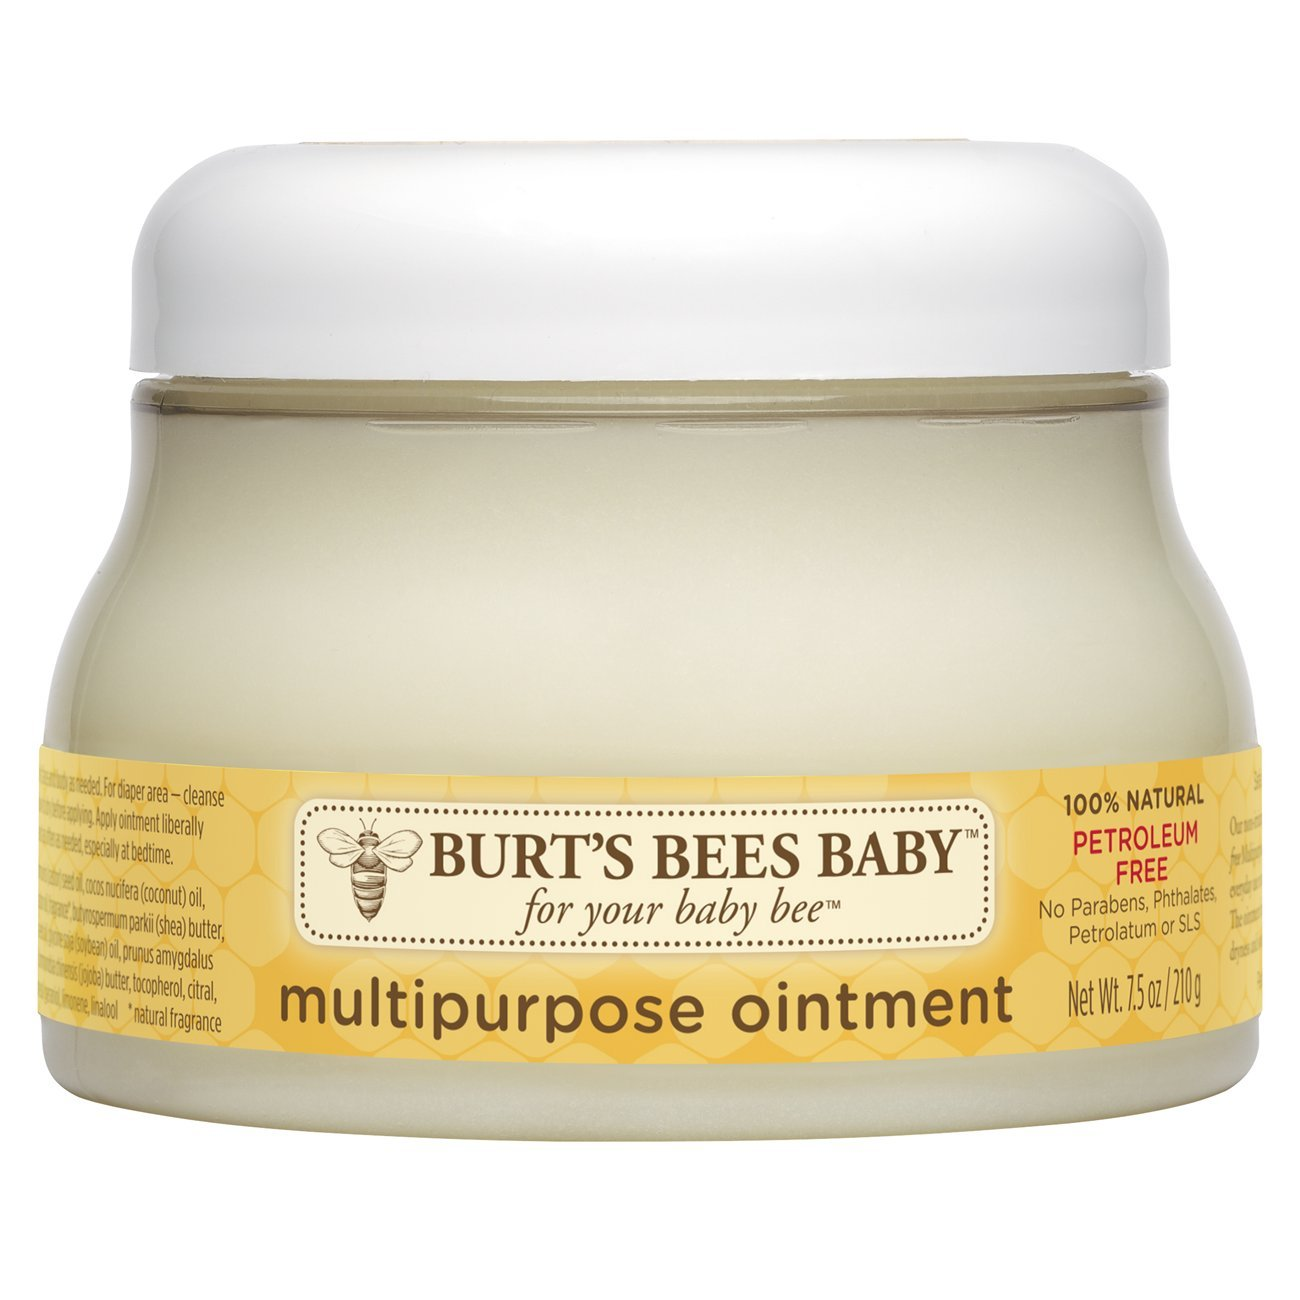 Burt's Bees Baby 100% Natural Multipurpose Ointment, Face & Body Baby Ointment - 7.5 Ounces